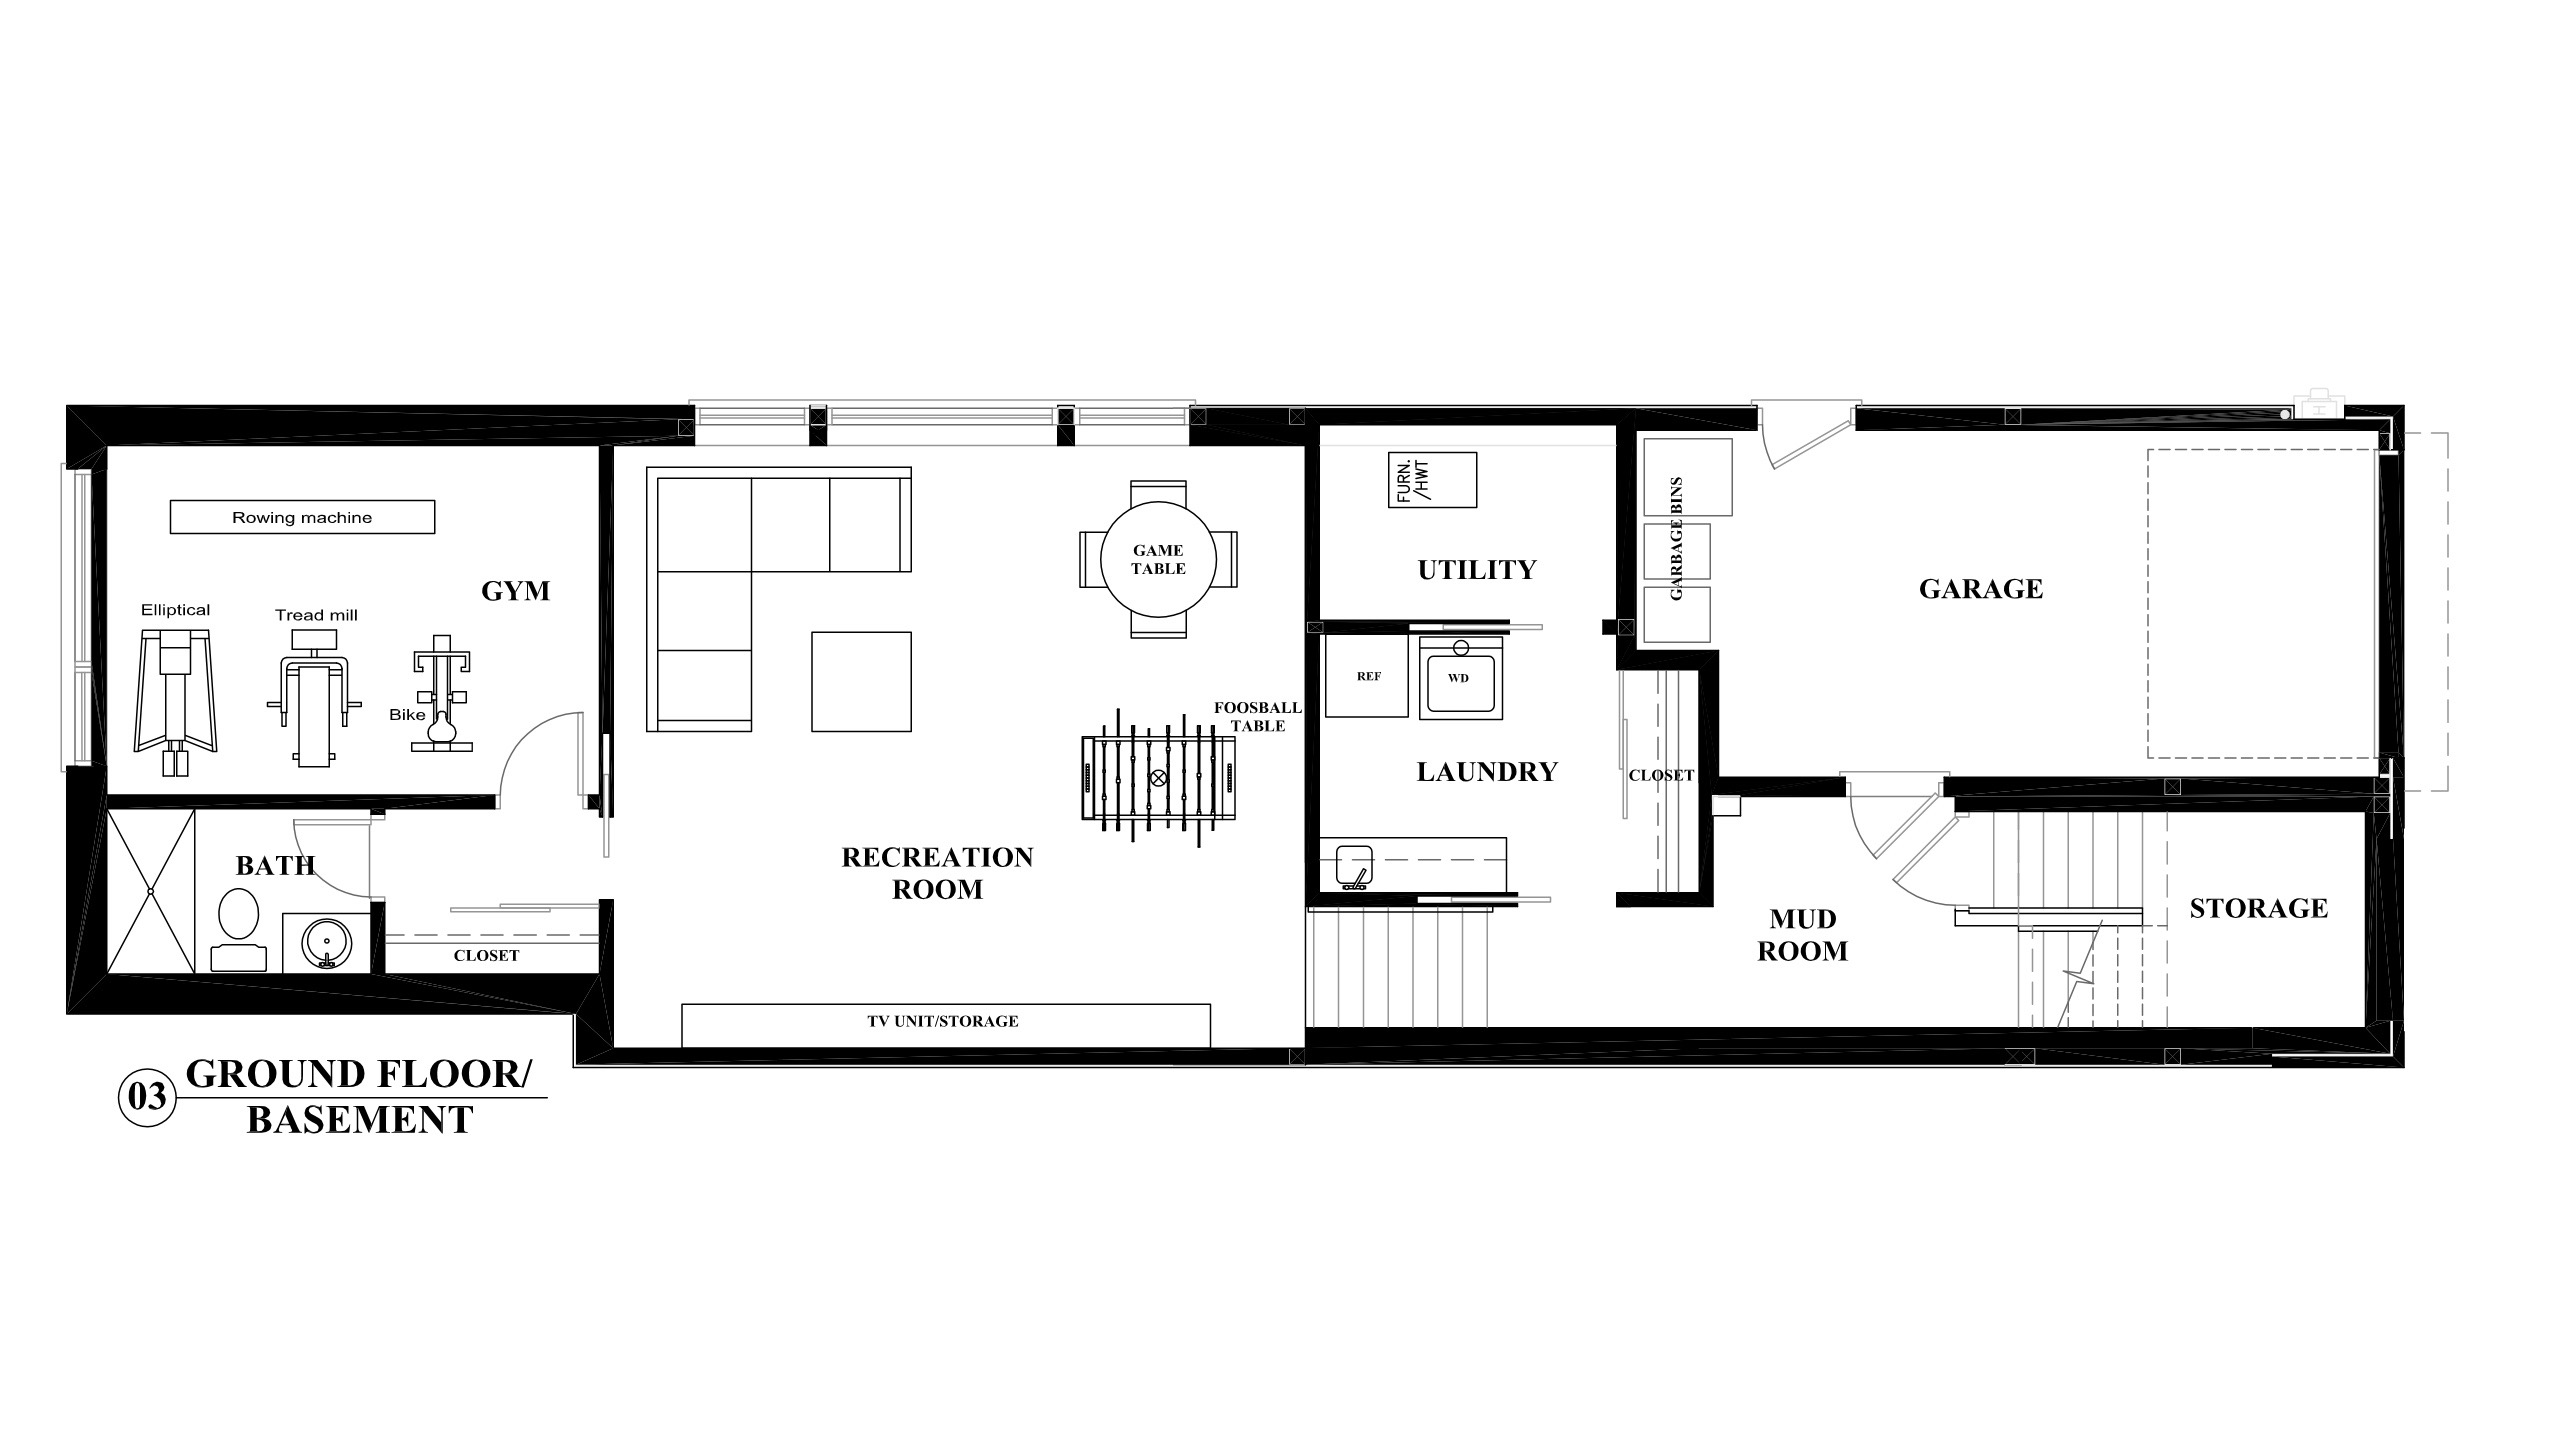 House Perspective With Floor Plan